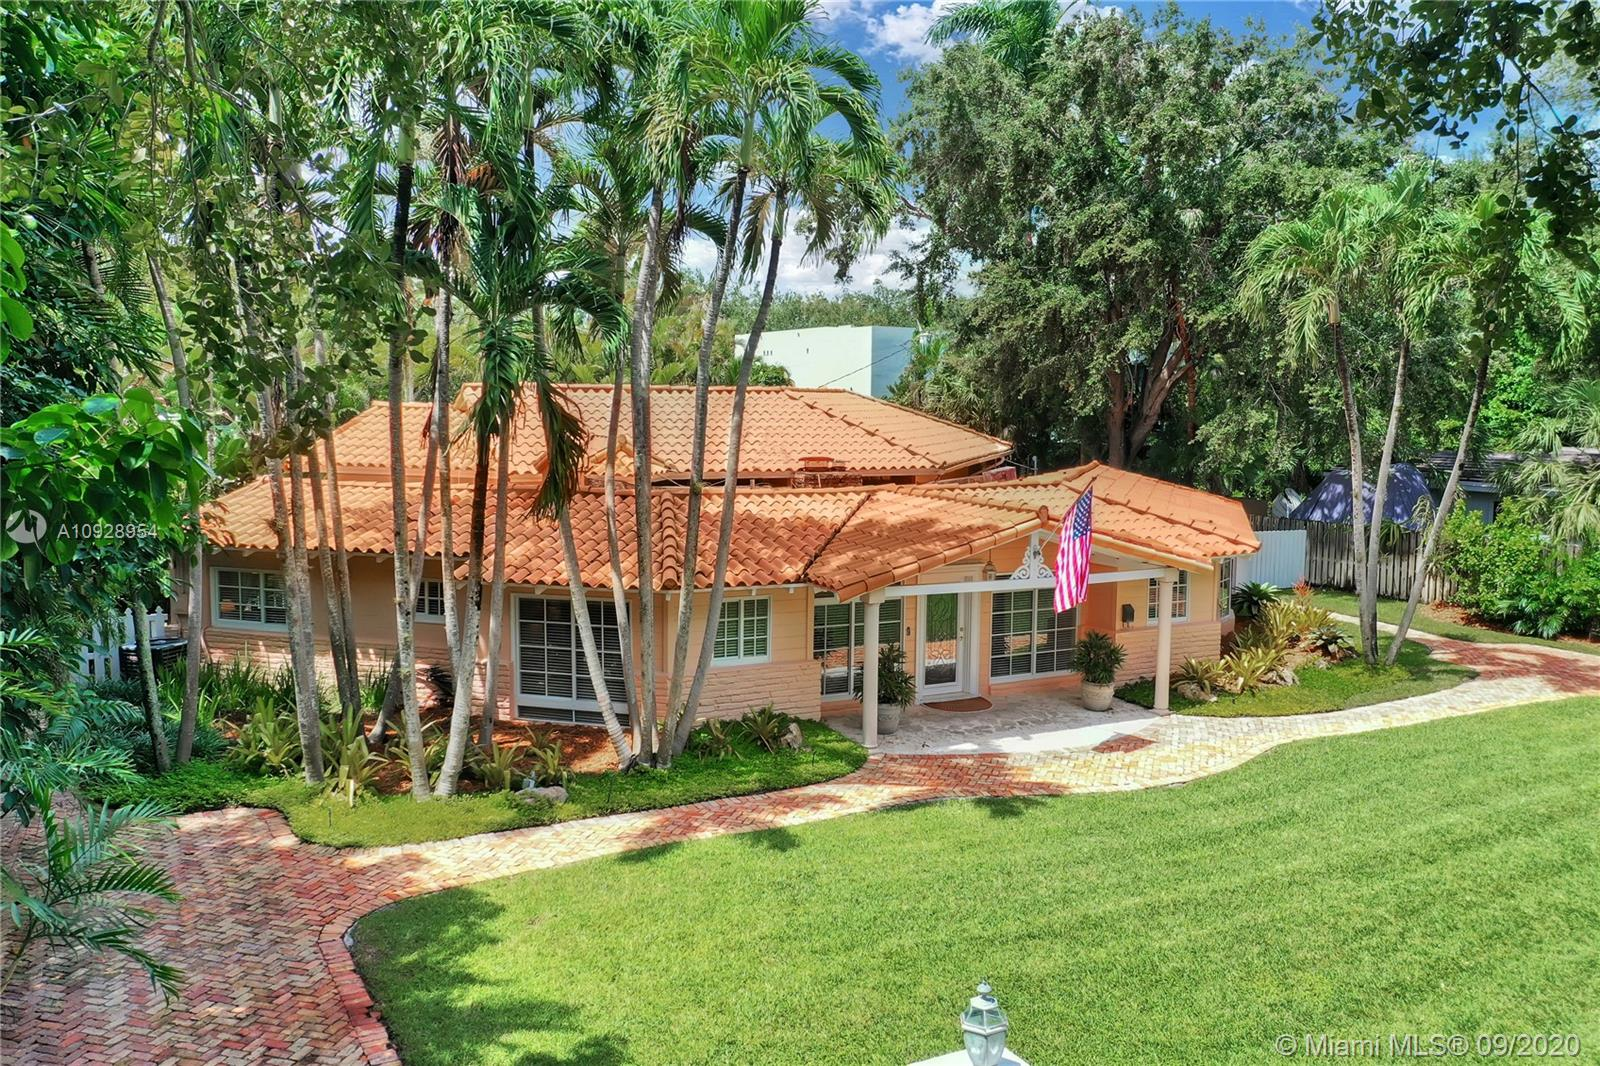 "This cottage-style charmer is located on a quiet, tree-lined street in the beautiful Ponce Davis/High Pines neighborhood. The home features high volume ceilings w/ exposed beams, marble/wood flooring, & new impact windows & doors. The light & bright, wide-open living spaces open to a lushly landscaped tropical waterfall,pool/patio oasis, w/Jacuzzi, & spacious gazebo for entertaining. The 4th bedroom is currently used as a large main closet (w/ bath), easily converted back to office space/bedroom. Other details include 6"" base/crown molding, Waterworks bath fixtures, 2 New A/C's, city water & septic. Close to favored South Miami/Gables/Grove, parks, shops, restaurants, & top schools. Come fall in love with this charming, tropical home within one of Miami's most sought after neighborhoods."